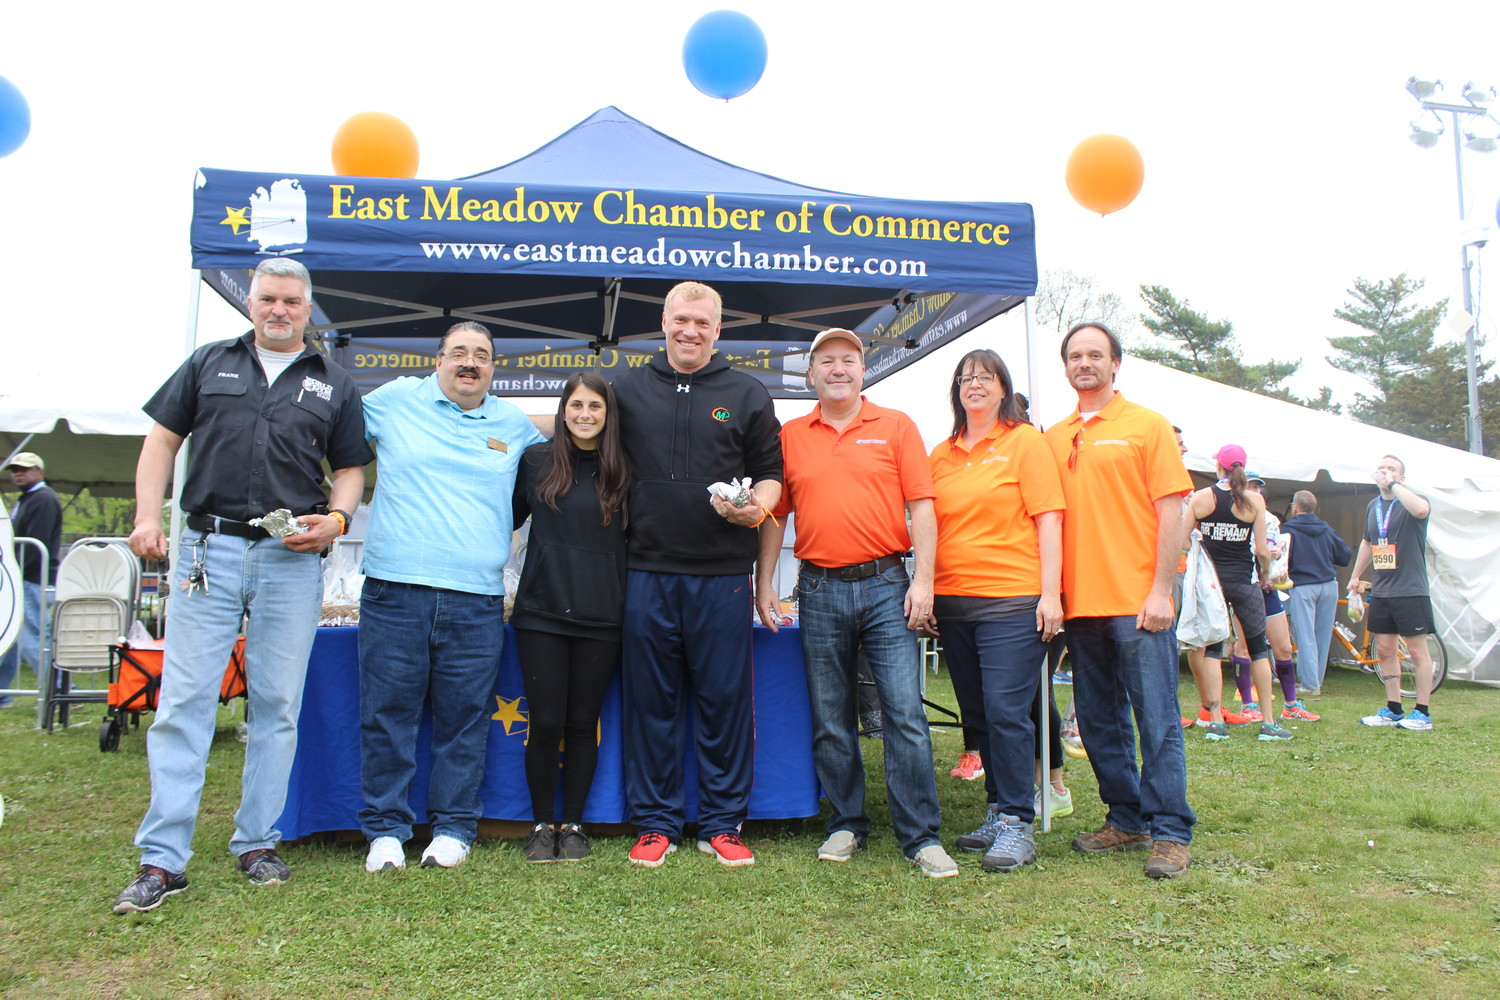 The East Meadow Chamber of Commerce greeted residents and runners at the Long Island Marathon's post-race festival. Above were, from left, President Frank Camarano; Anthony Sereno; Callie Ognibene; Michael Levy; John DeCelle, president and chief executive officer of the Nassau Financial Federal Credit Union; and Victoria and Peter Aievoli.